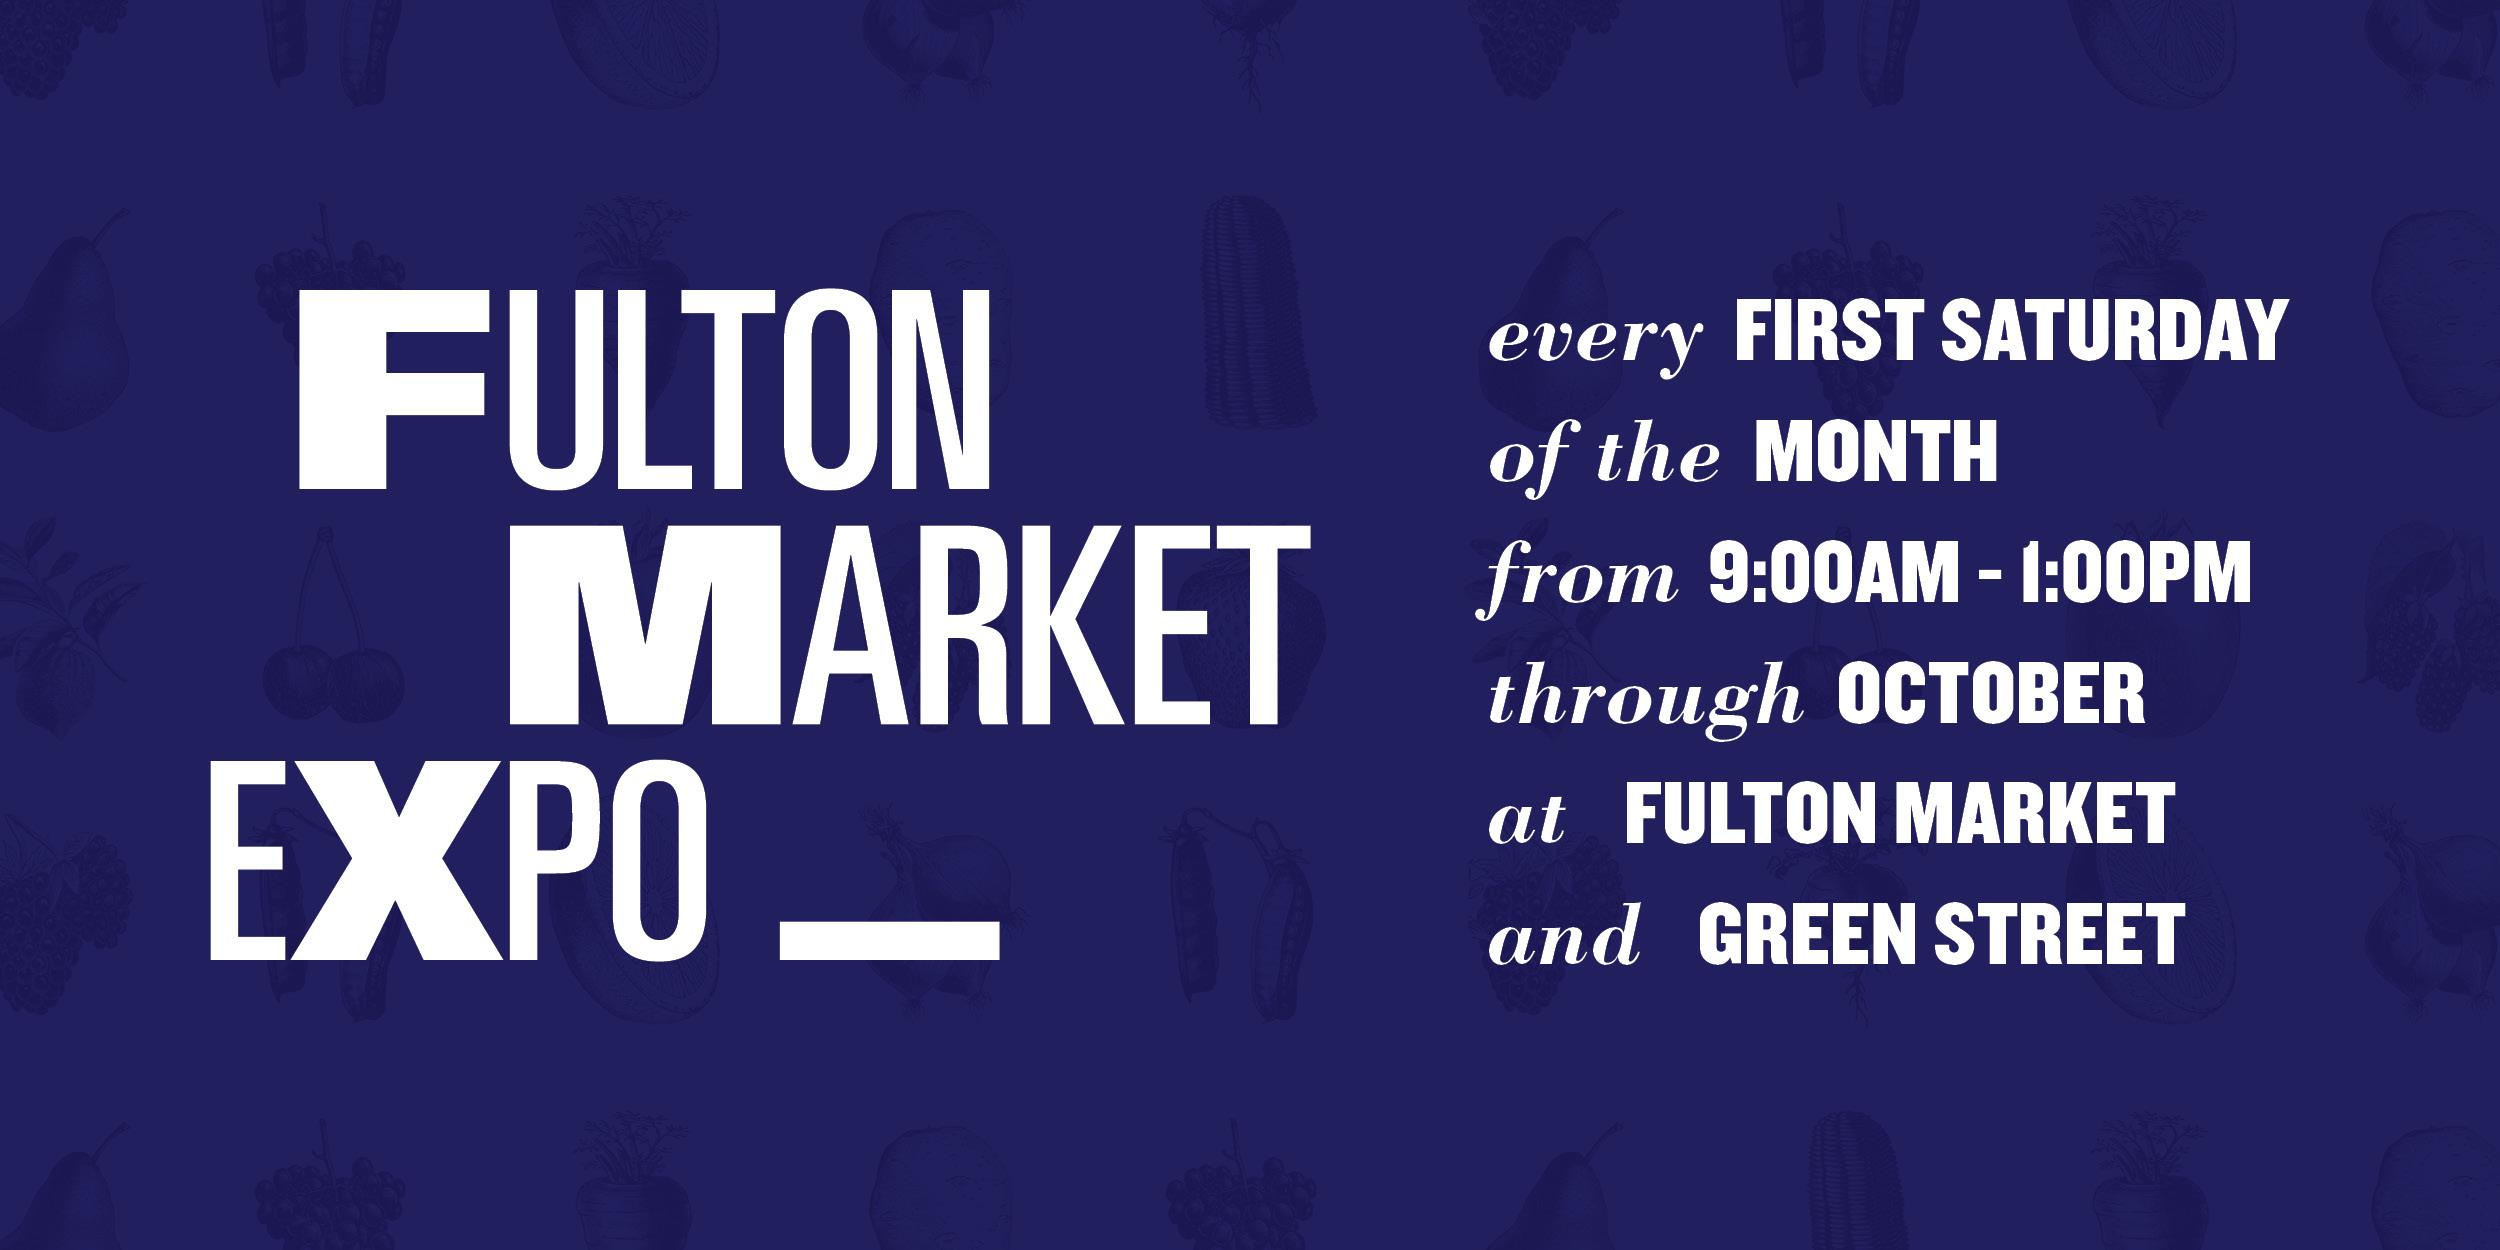 Fulton Market Expo returns Saturday, May 4!